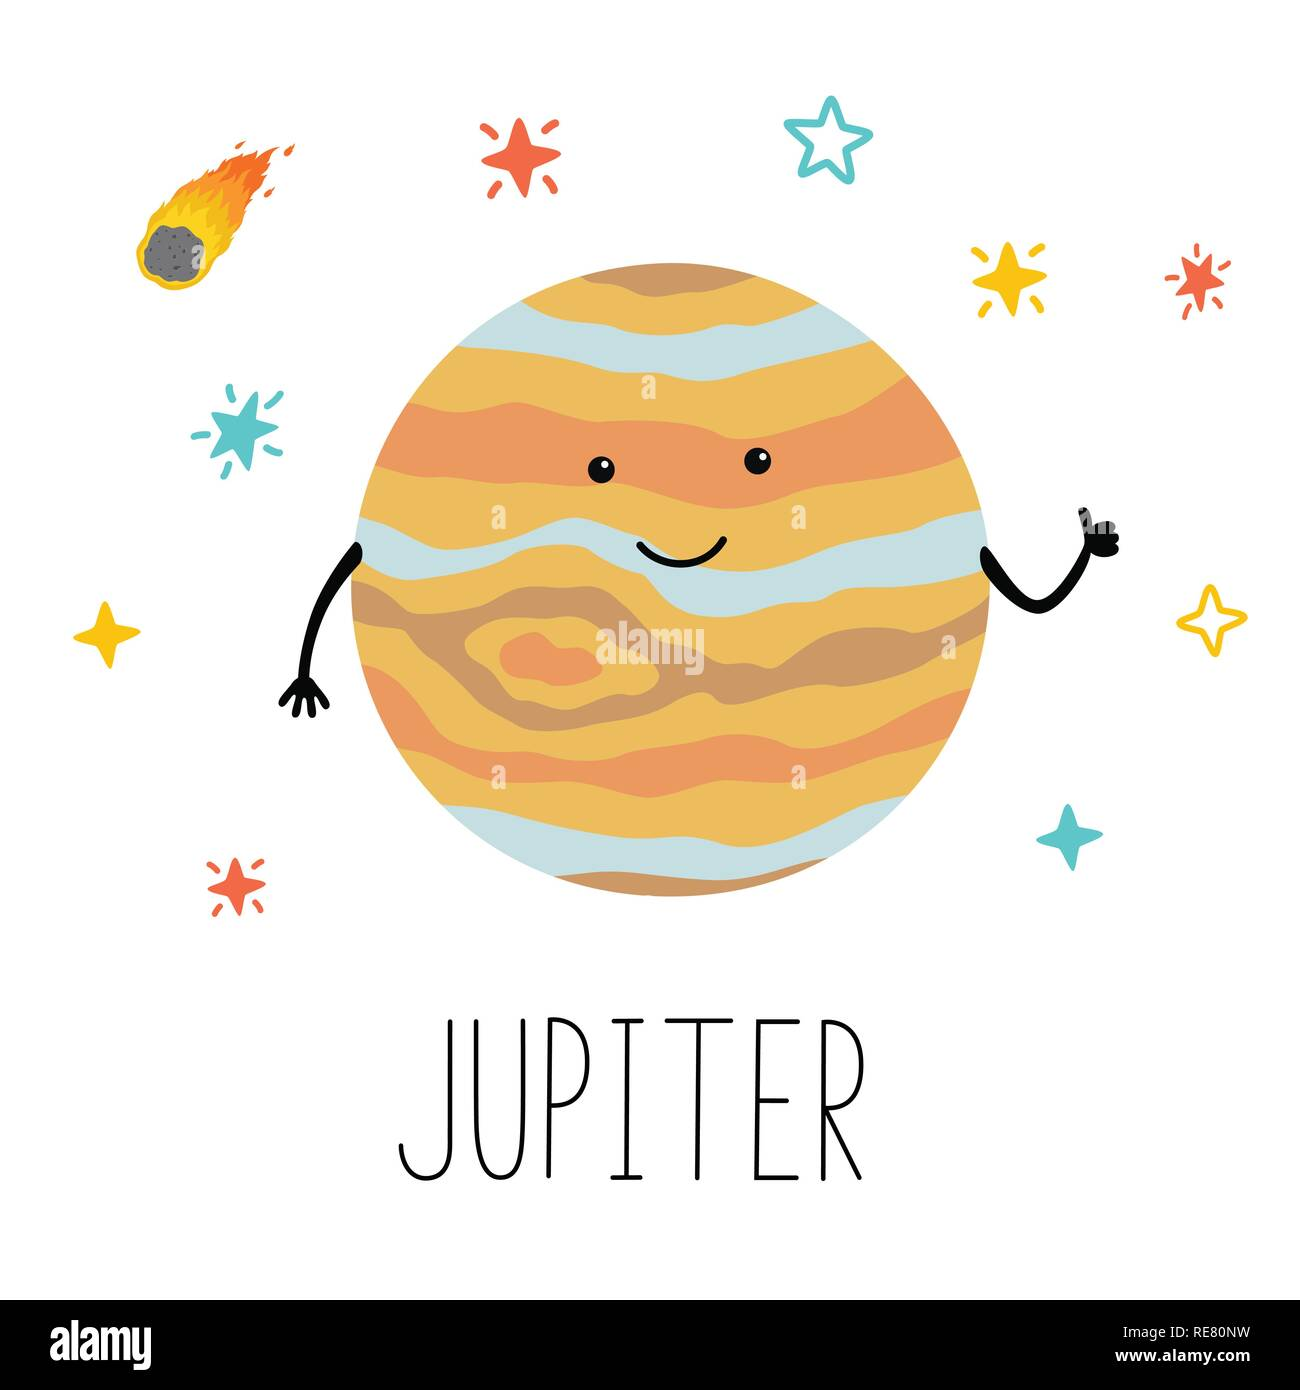 Vector cartoon funny illustration of planet smiling happy Jupiter in cartoon style on space star sky. Poster for children room, education. - Stock Image